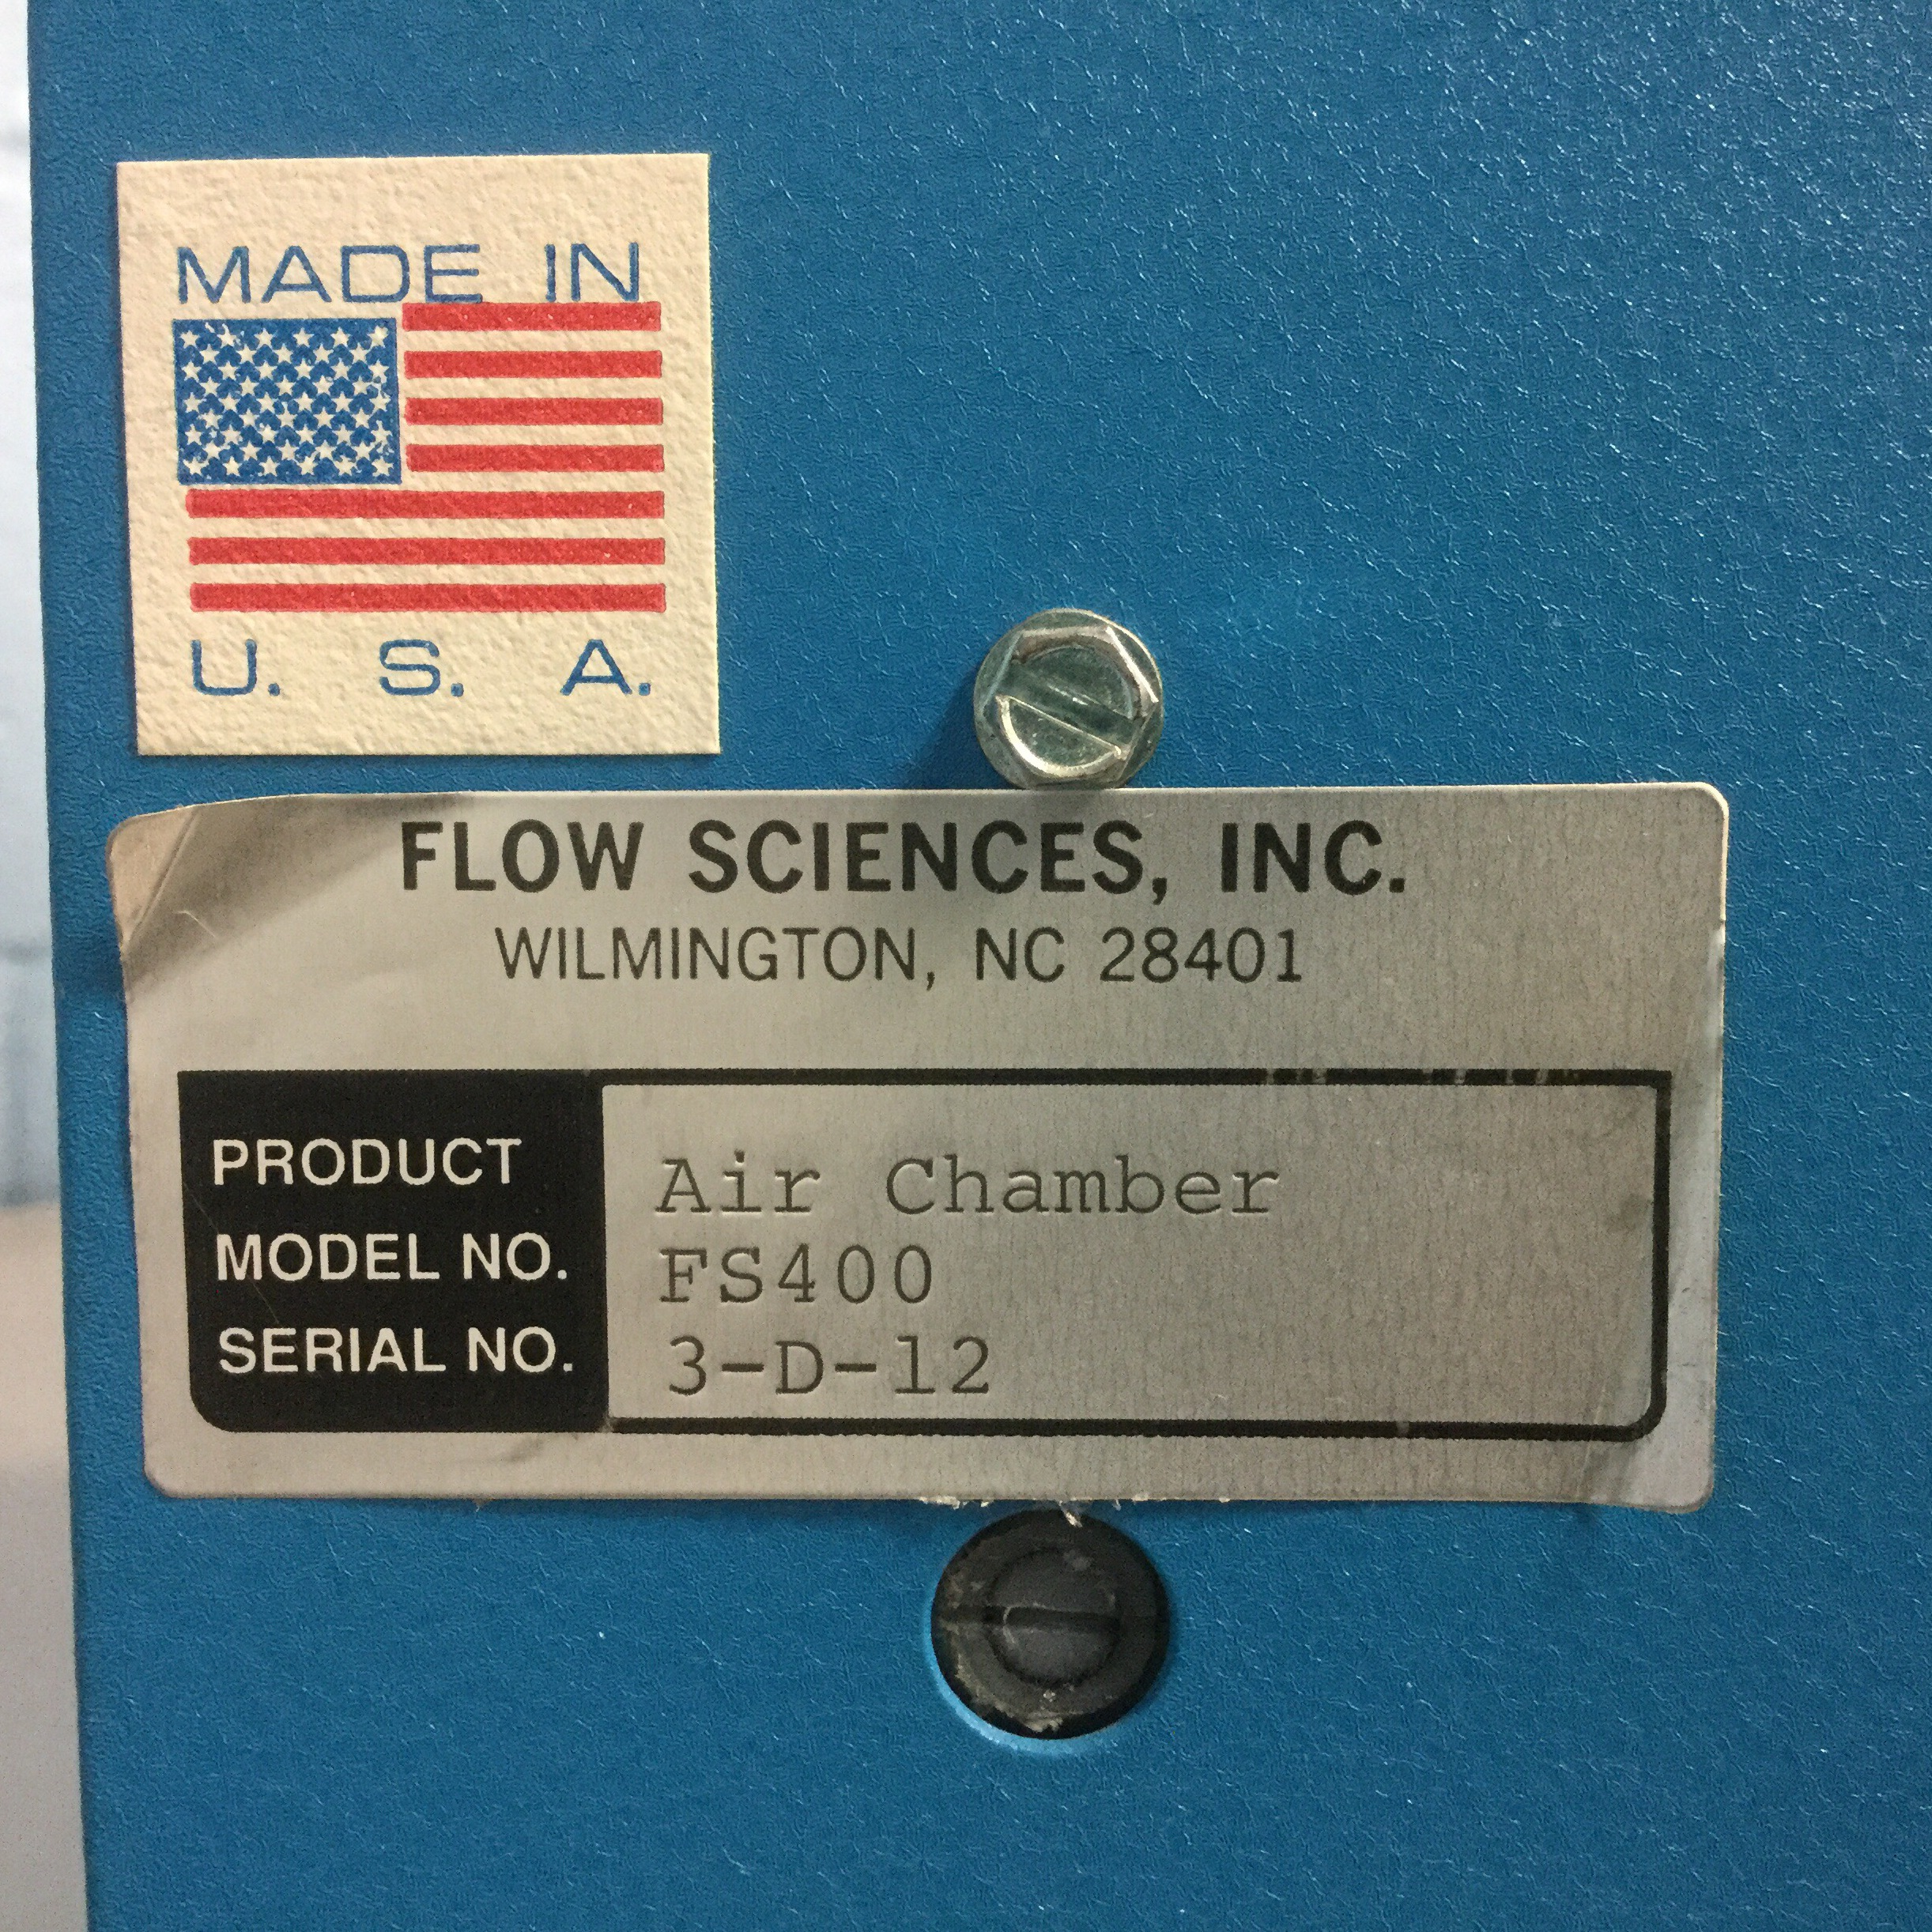 Flow Sciences Model FS400 Image